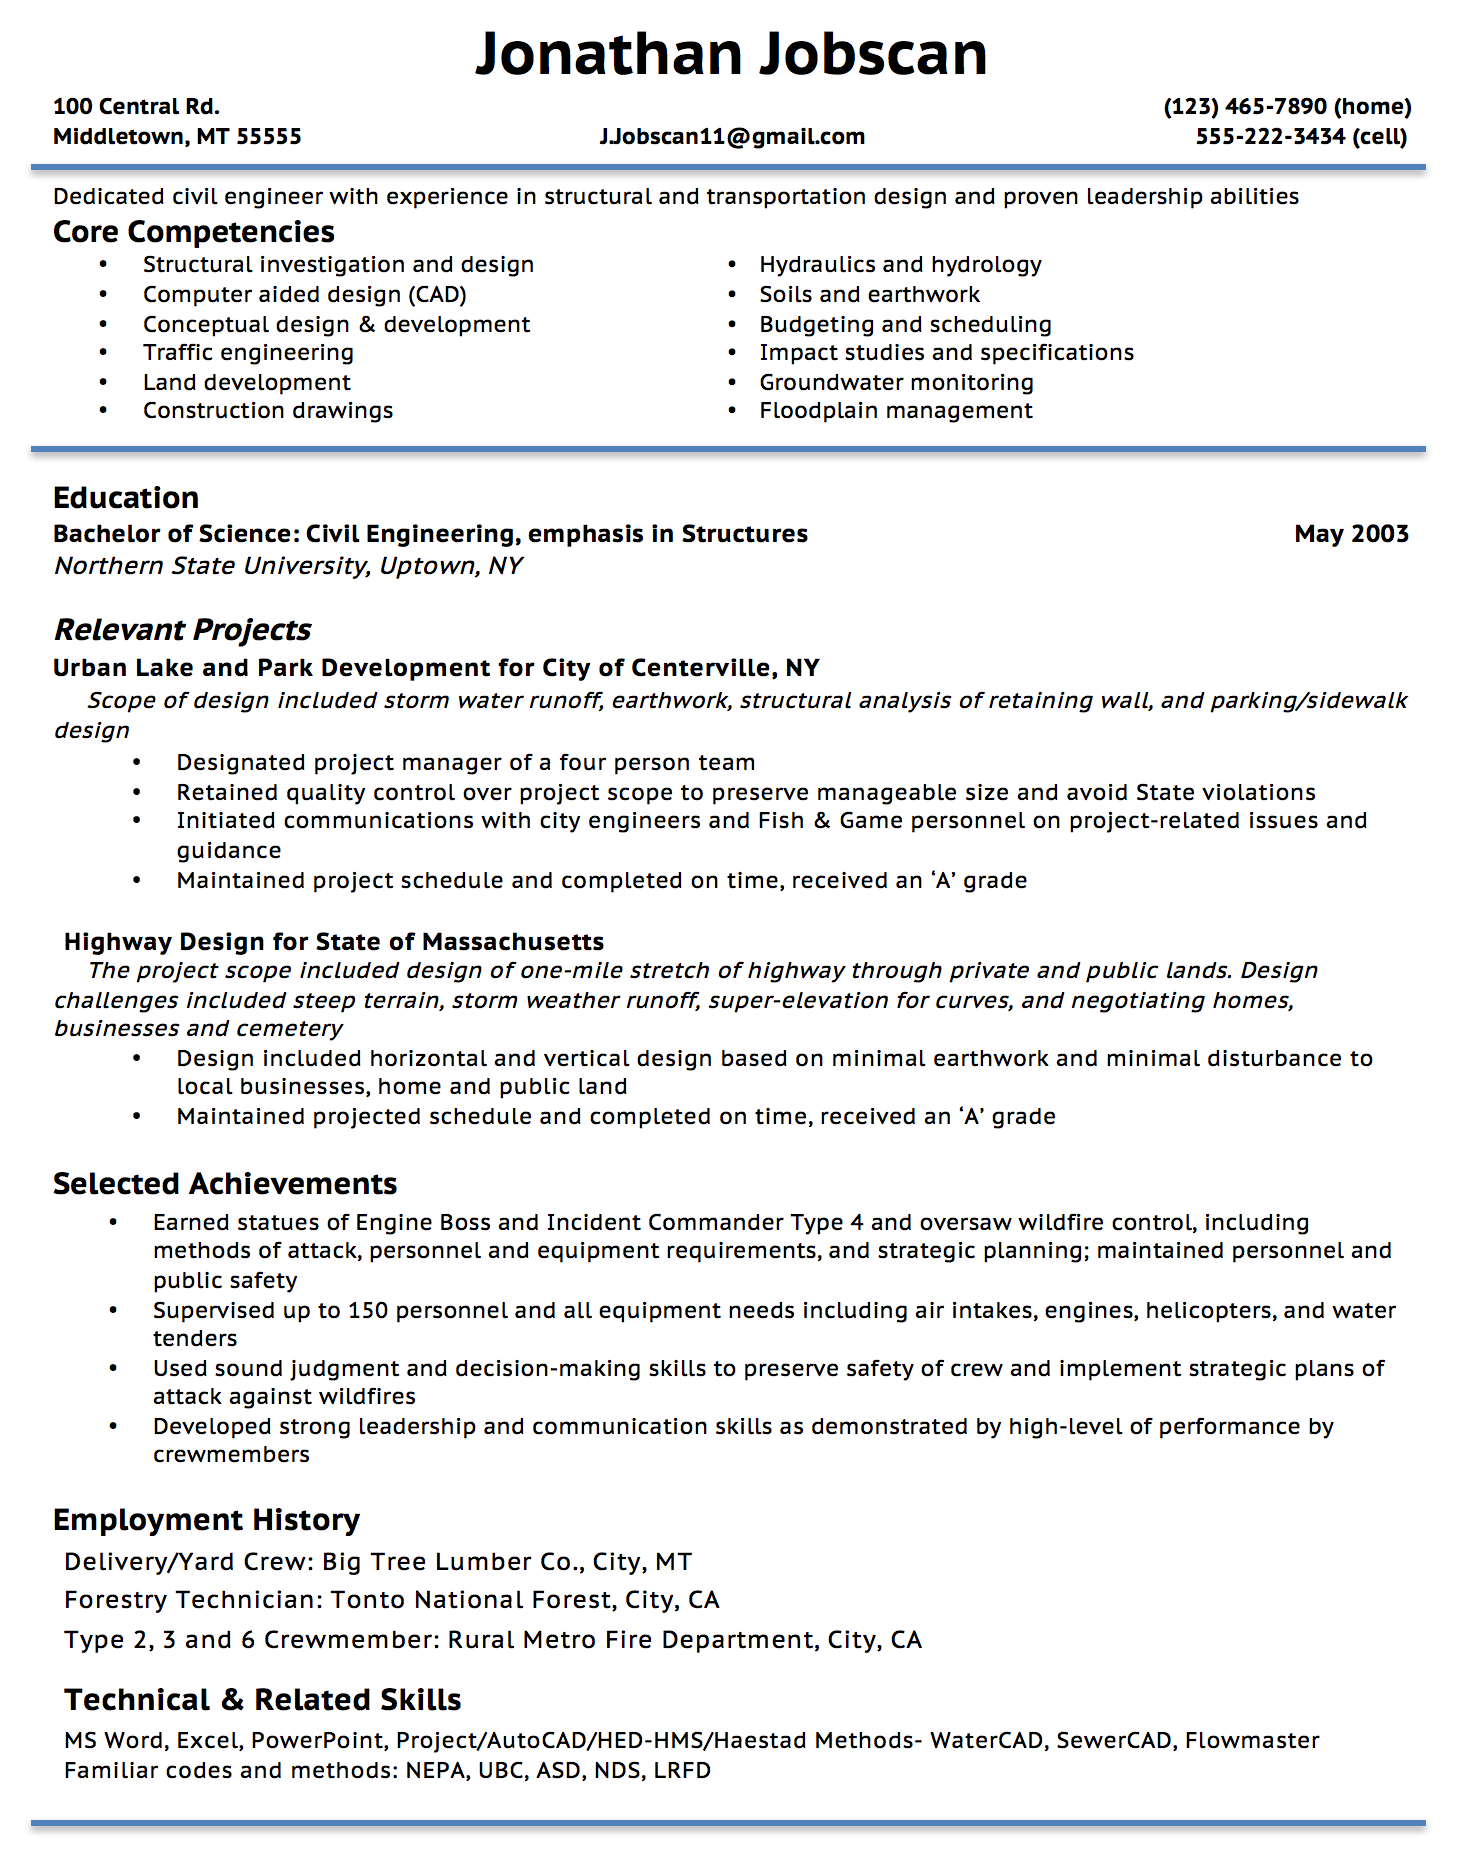 Opposenewapstandardsus  Winsome Resume Writing Guide  Jobscan With Lovable Example Of A Functional Resume Format With Extraordinary Artist Resumes Also Cna Resume Example In Addition Hr Resume Objective And A Good Resume Example As Well As Resume Te Additionally Fbi Resume From Jobscanco With Opposenewapstandardsus  Lovable Resume Writing Guide  Jobscan With Extraordinary Example Of A Functional Resume Format And Winsome Artist Resumes Also Cna Resume Example In Addition Hr Resume Objective From Jobscanco